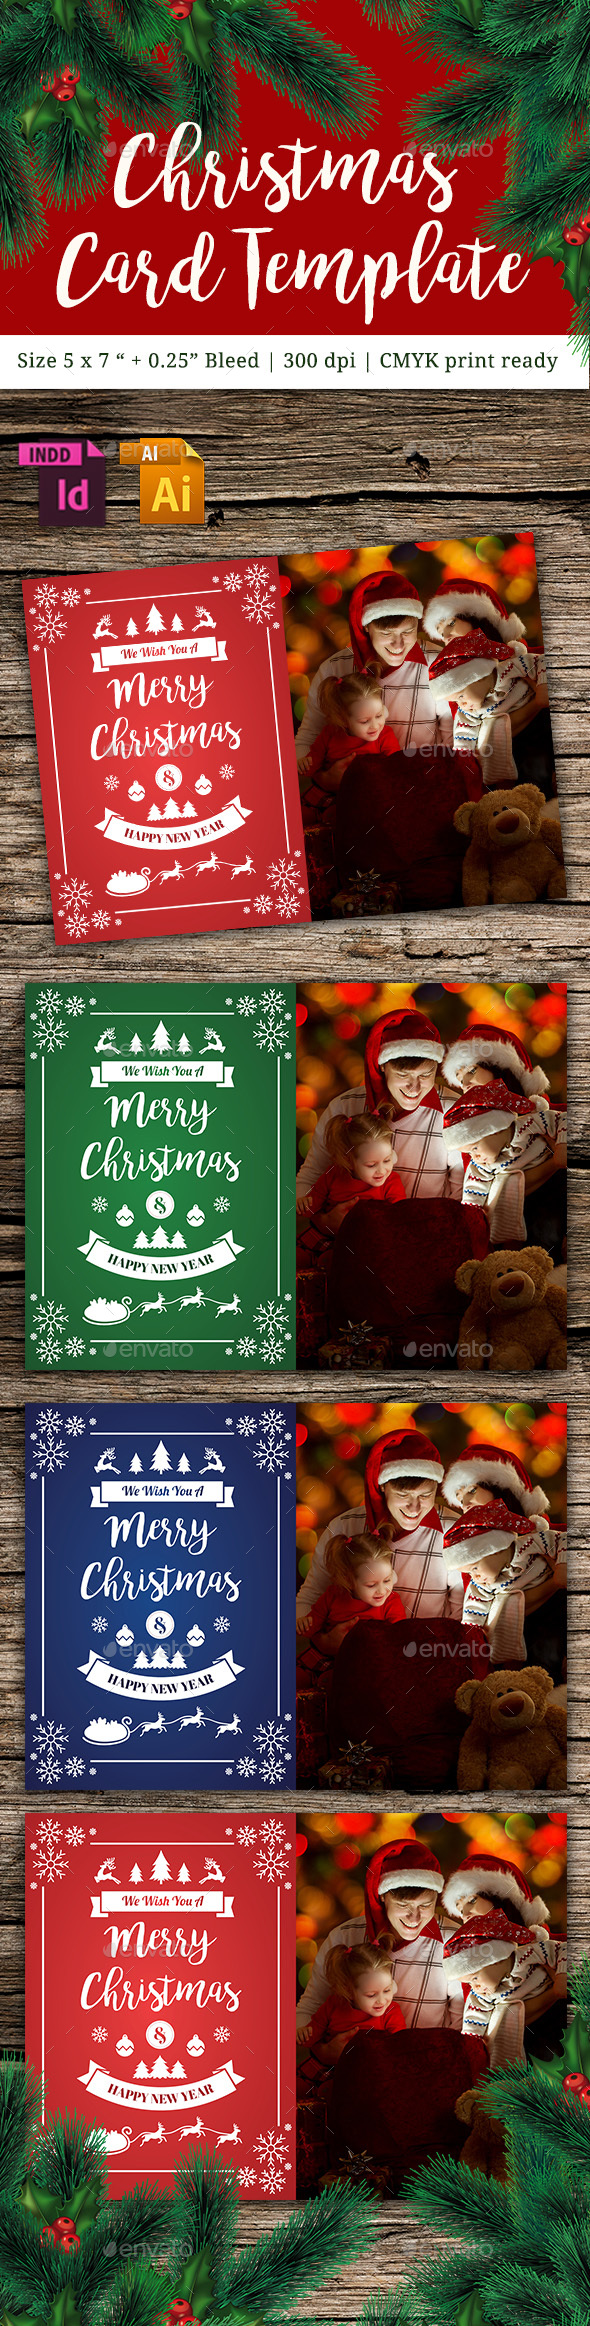 Christmas Card Vol. 6 - Cards & Invites Print Templates